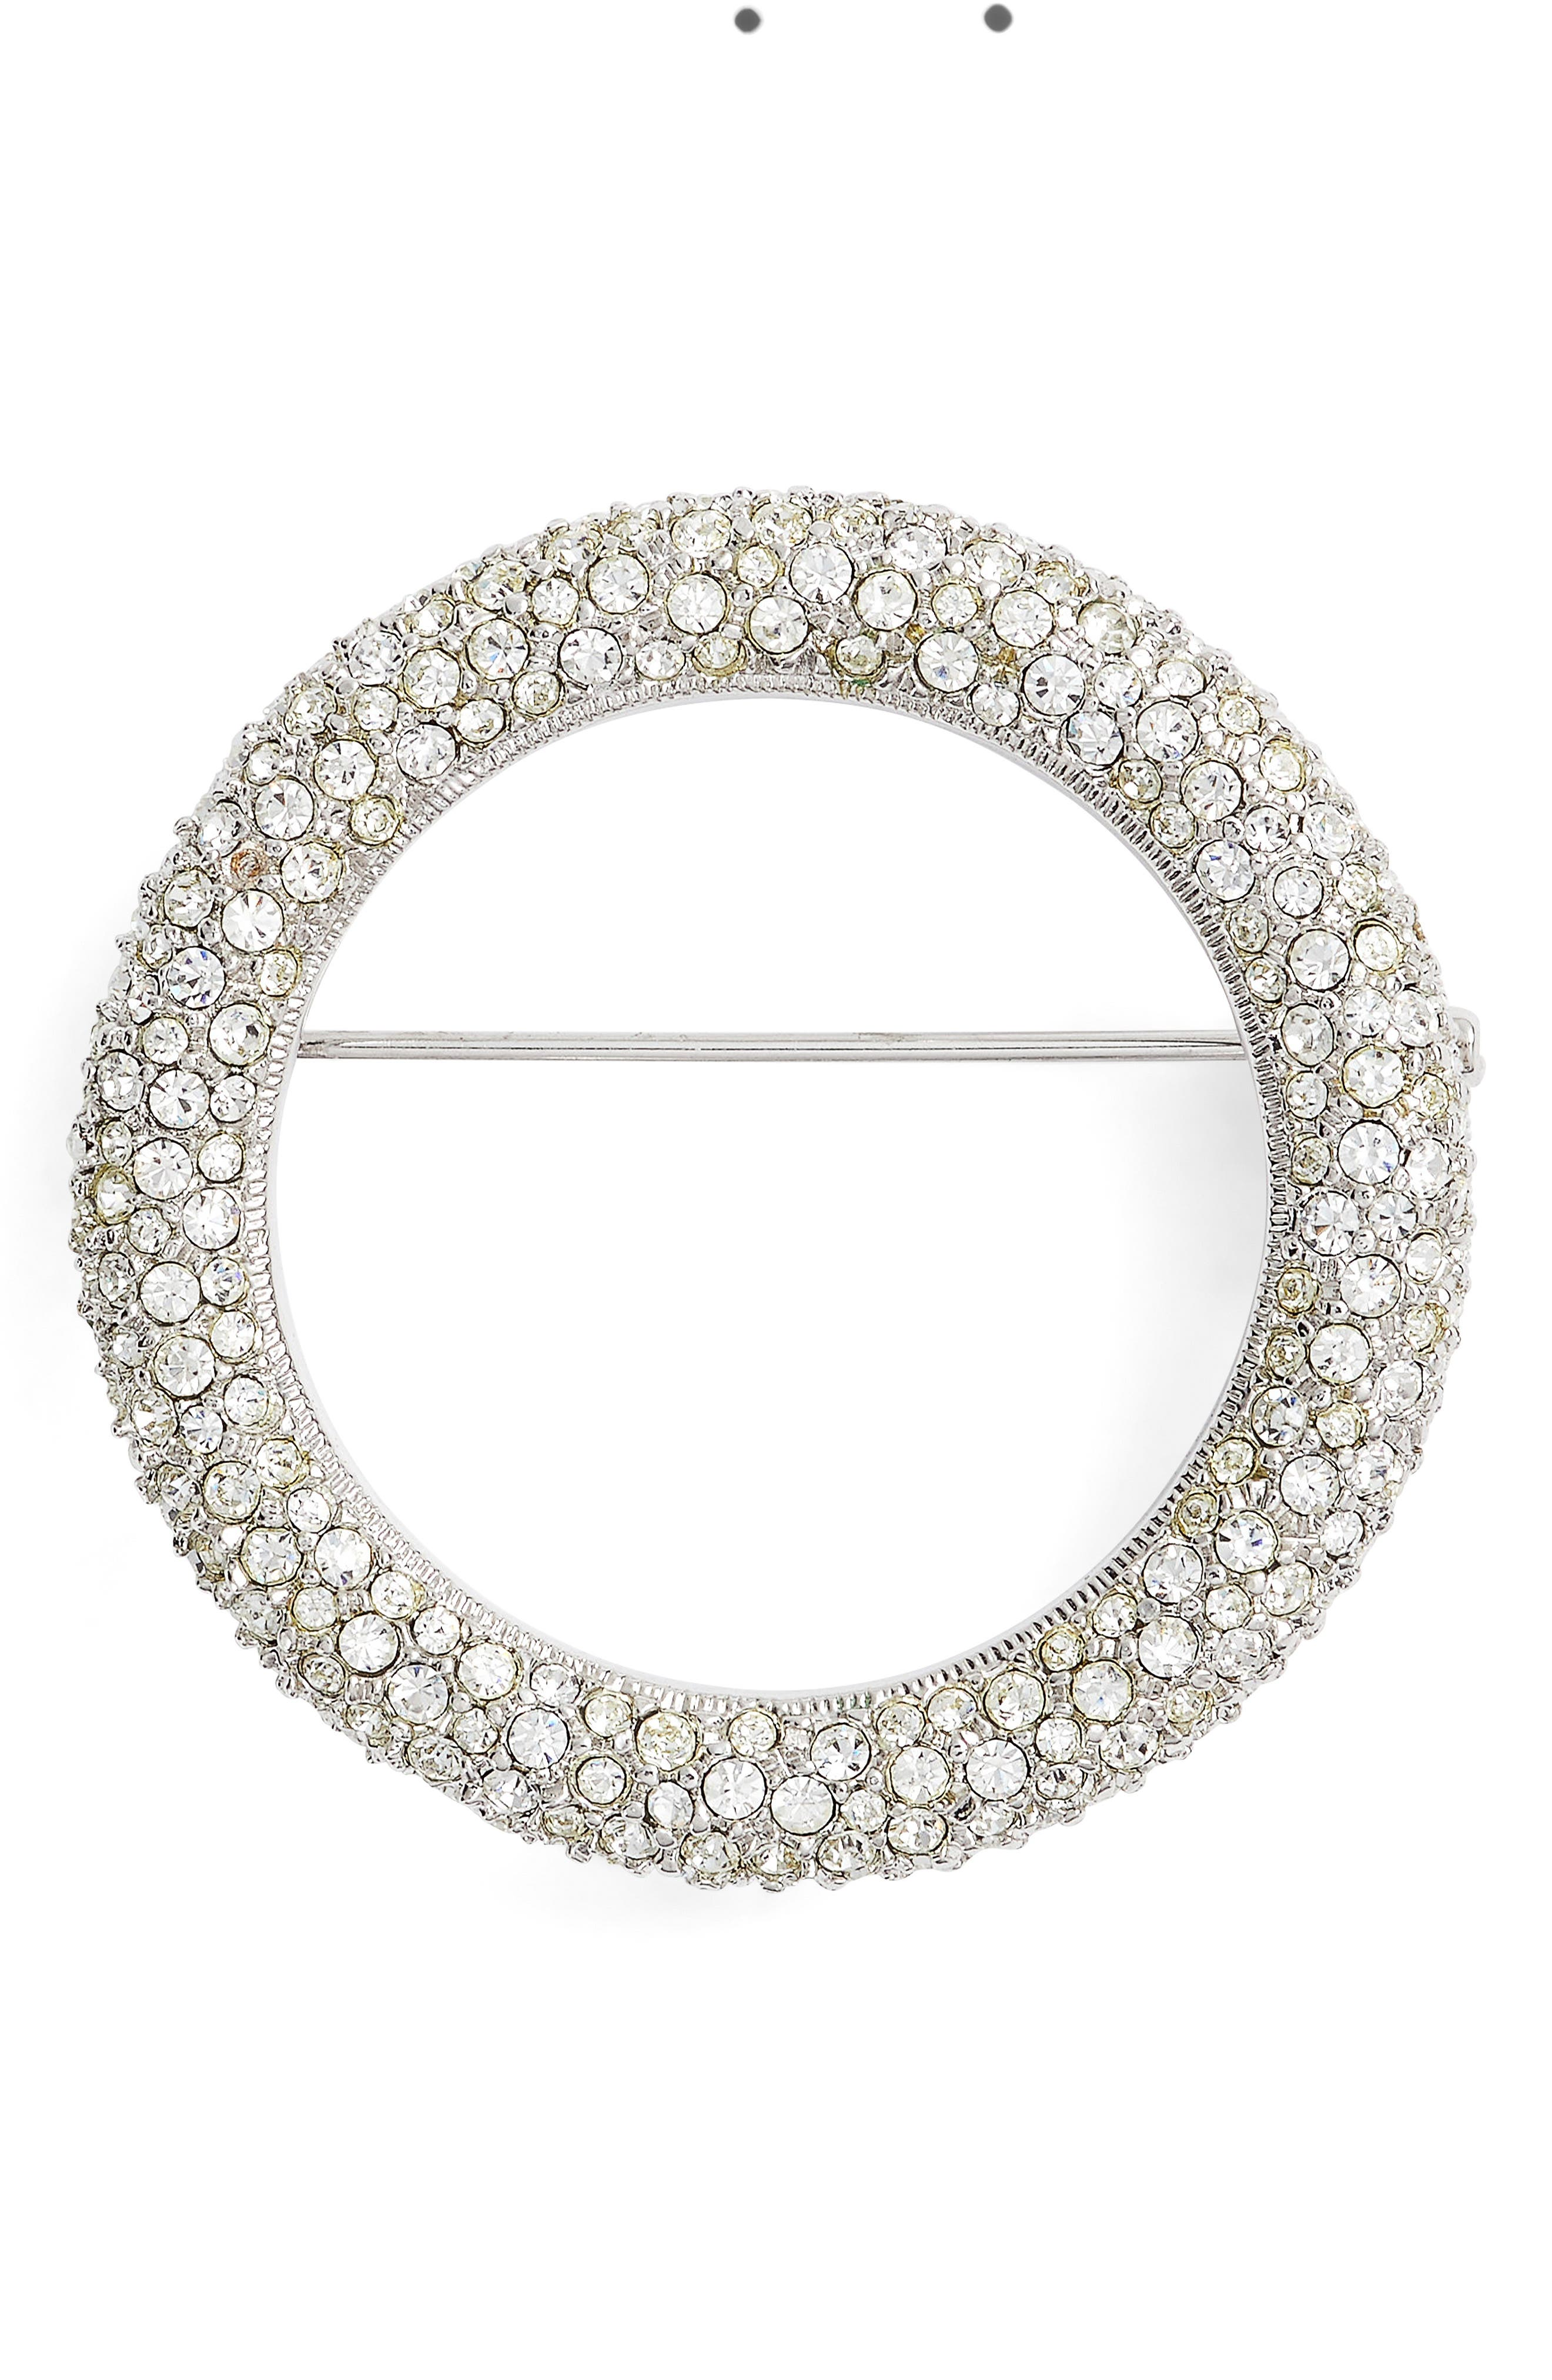 1930s Outfit Ideas for Women Womens Nadri Pave Circle Brooch $78.00 AT vintagedancer.com